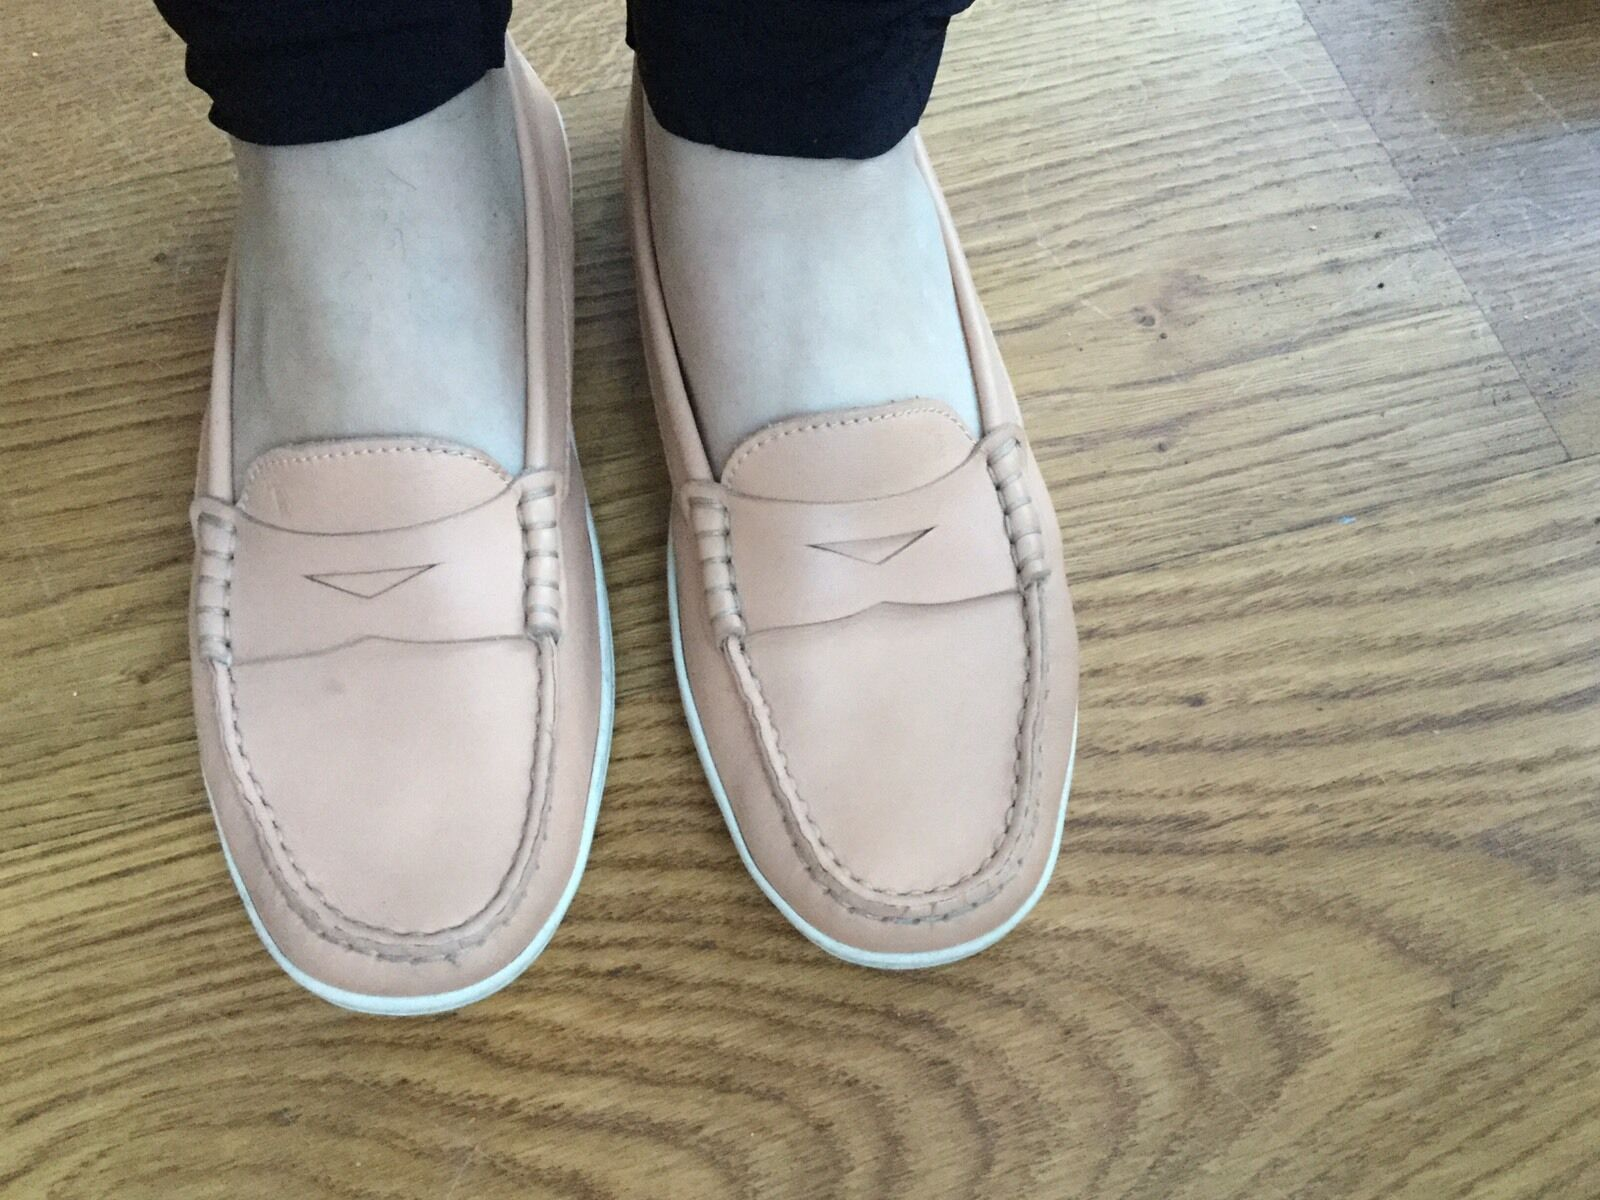 TOD'S Driving Beige Leather Moccasins Flats Driving TOD'S Shoes Sz 36 1/2 UK 3.5 US 6.5 2b2df9